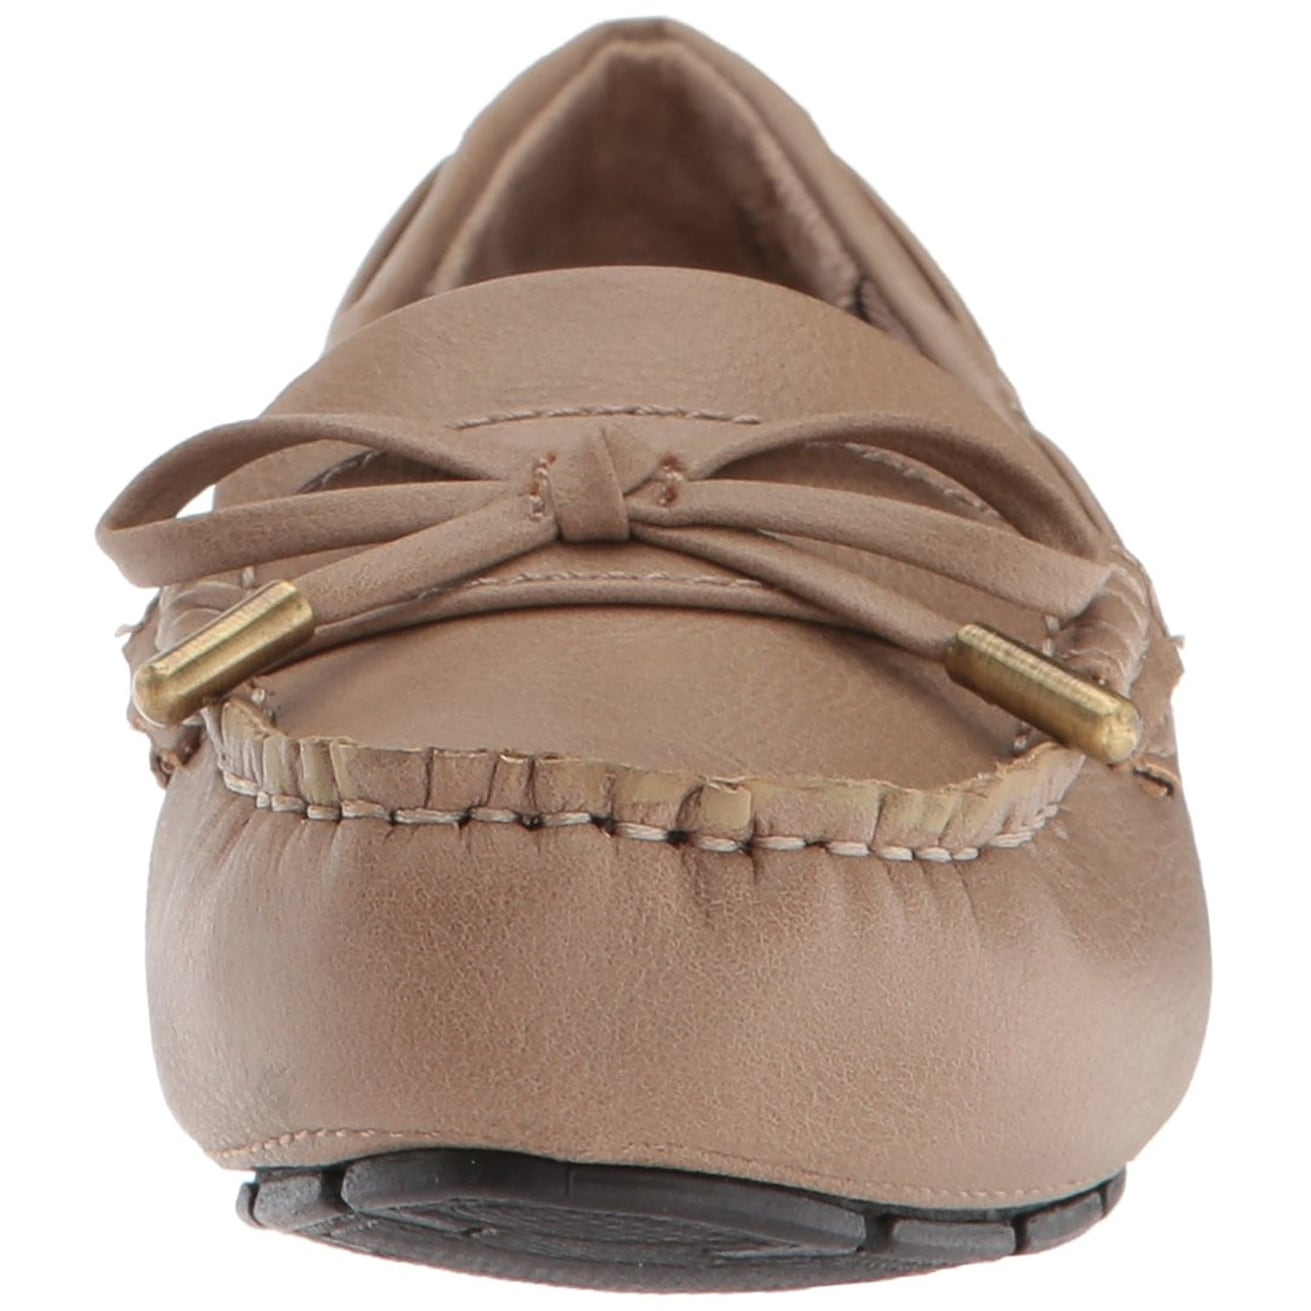 02b1266e30a Shop LifeStride Womens Valor Closed Toe Loafers - Free Shipping On Orders  Over  45 - Overstock - 21594754